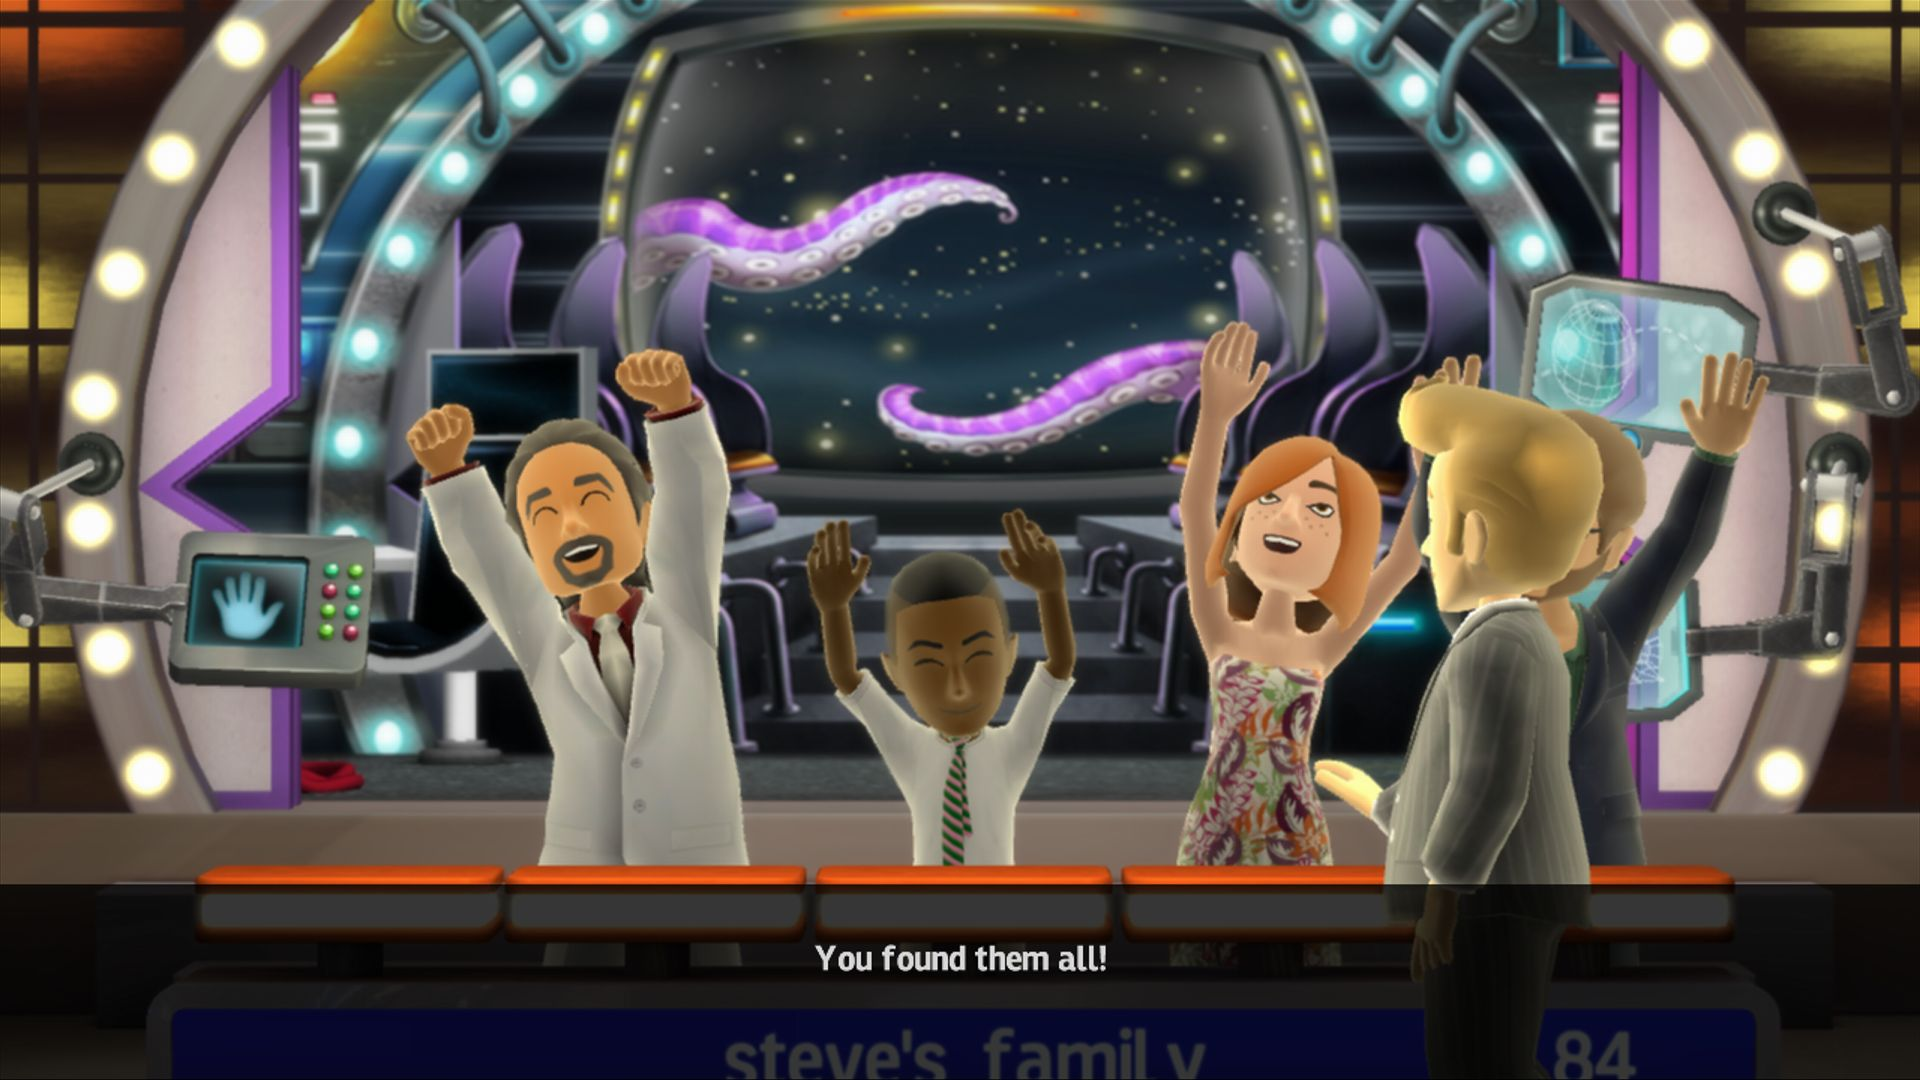 Ubisoft Announces Four New Video Games Based on Popular TV Game Shows